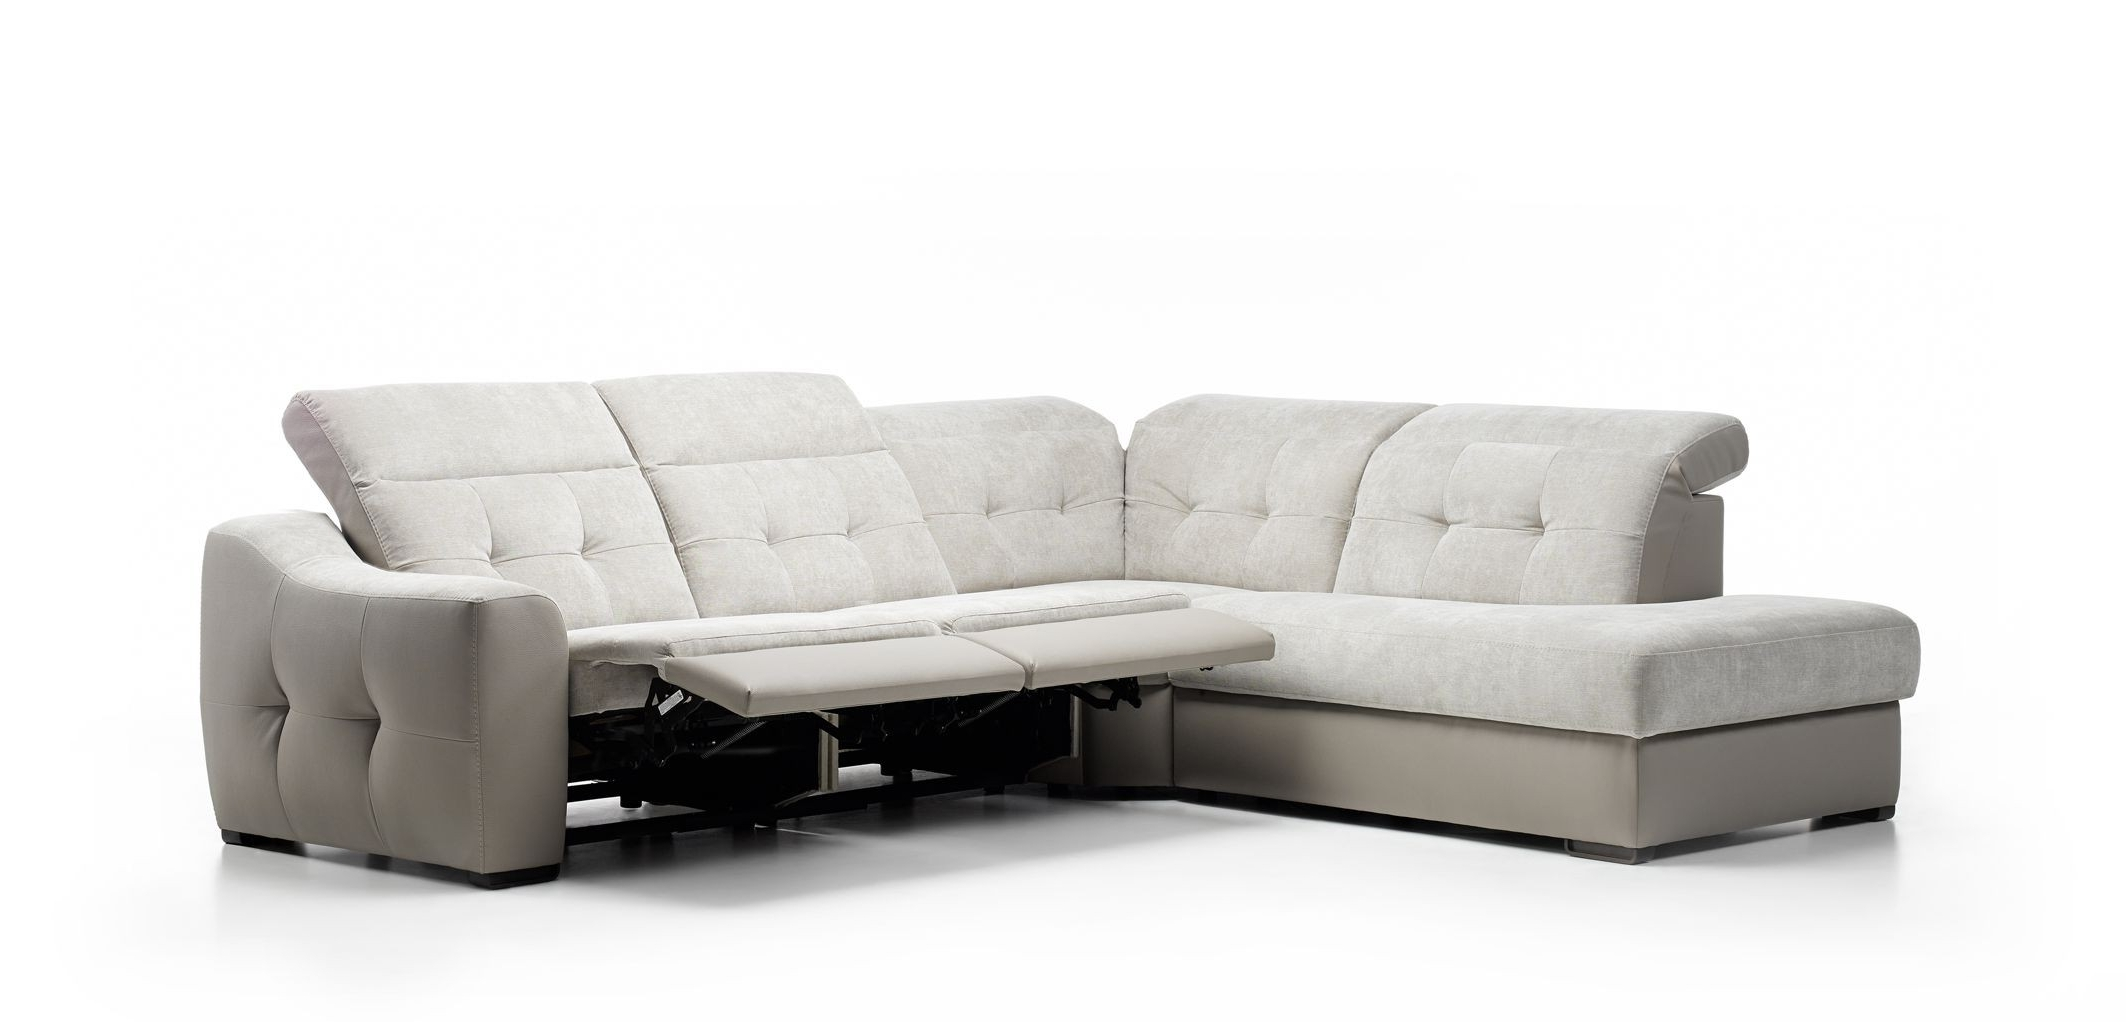 Well Known Wall Hugger Loveseat Recliners Loveseat Sectional Apartment Size In Modern Sectional Sofas For Small Spaces (View 15 of 15)